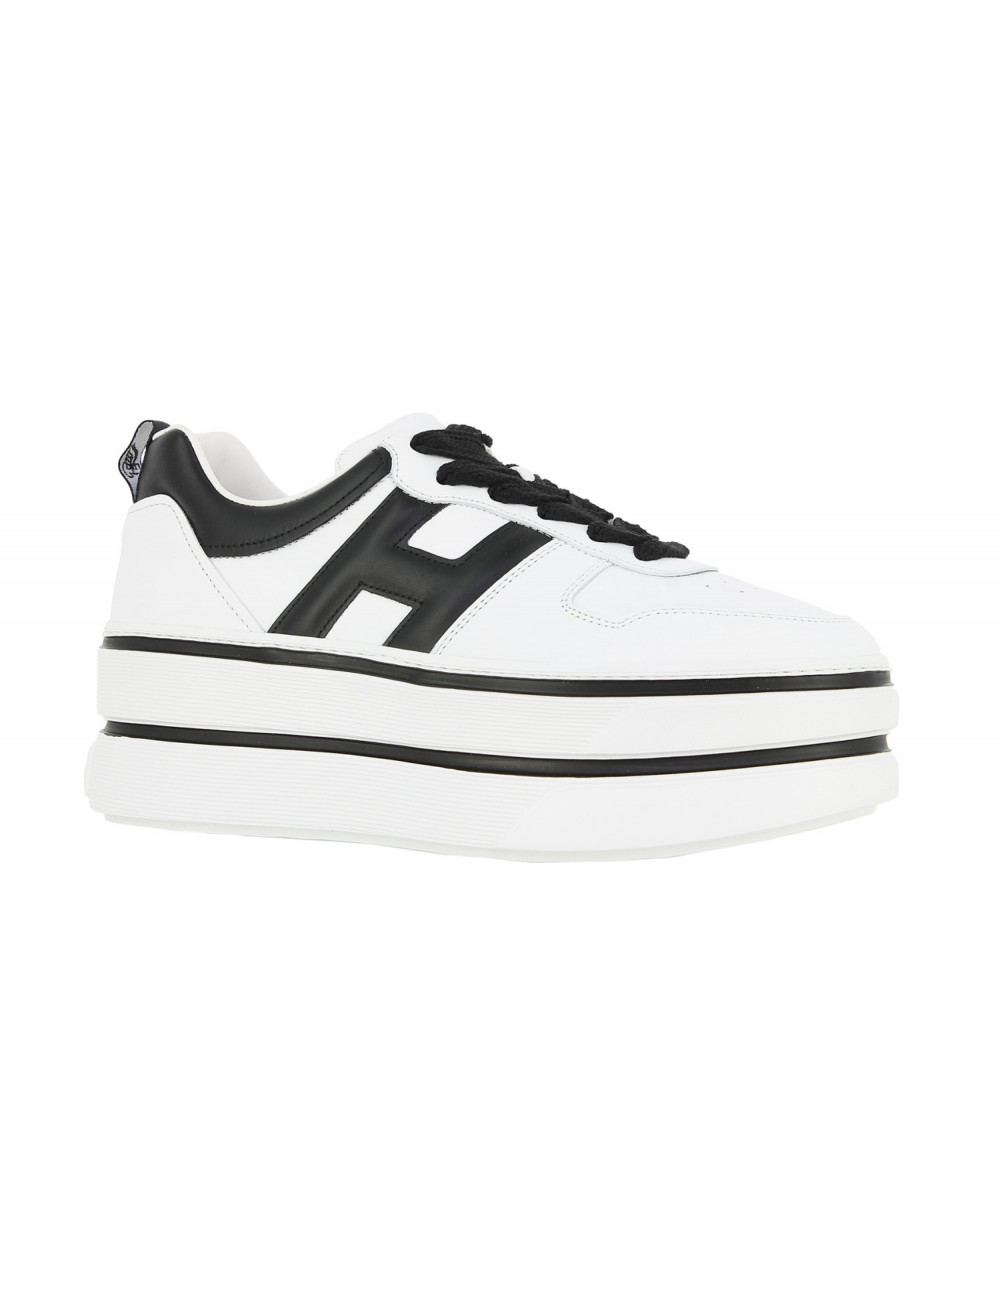 Sneakers H449 Hogan